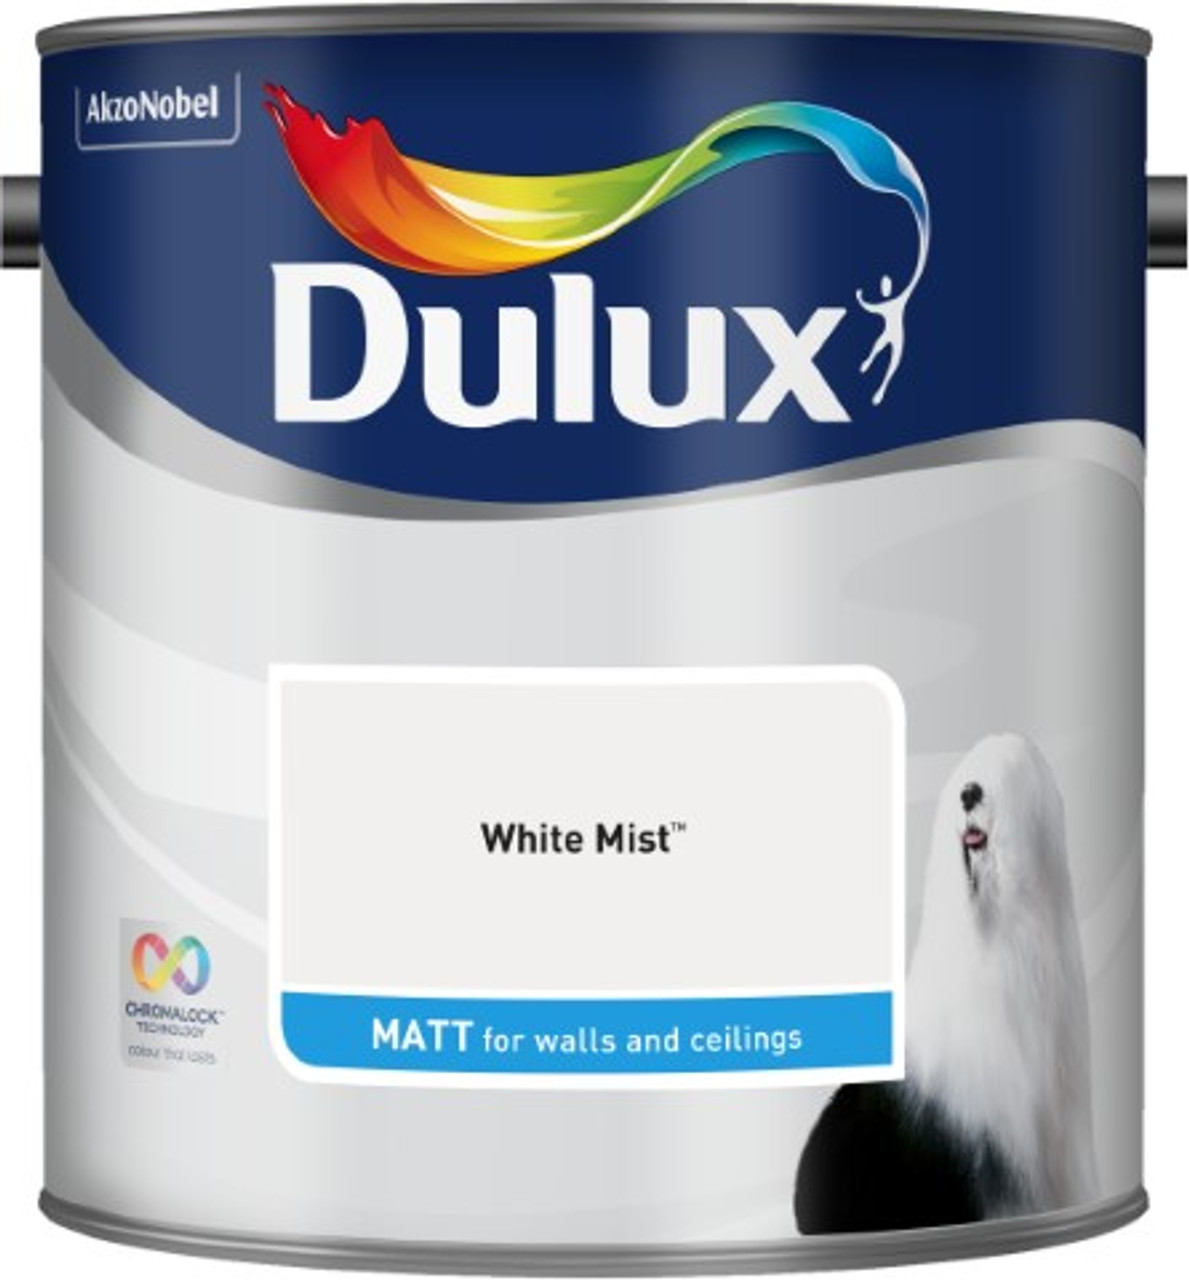 2.5L Dulux Matt Emulsion White Mist